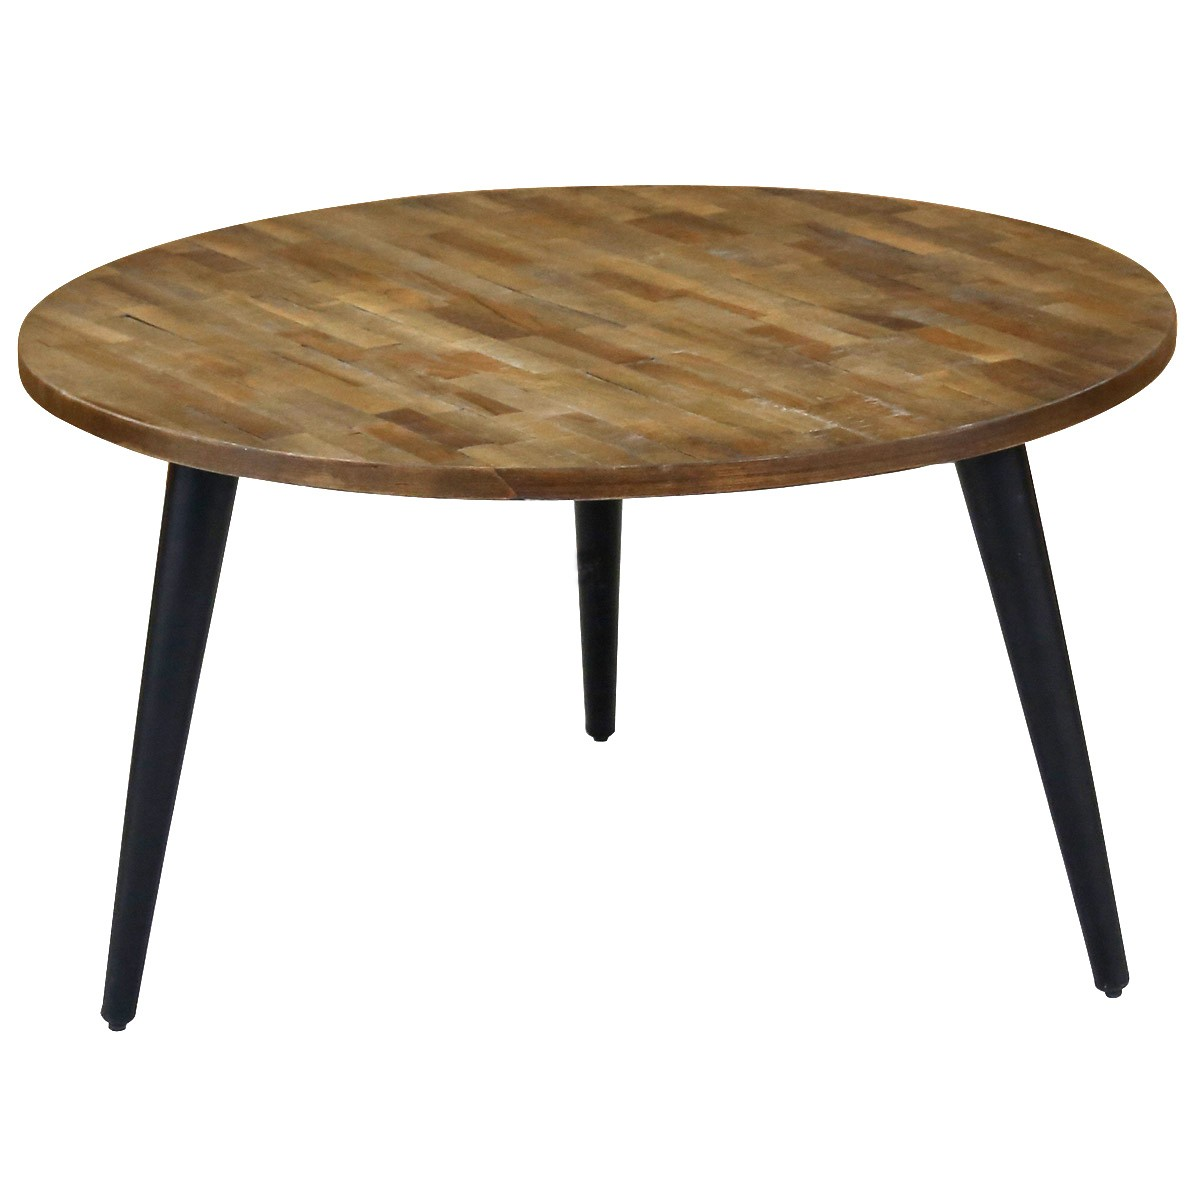 Woody Fashion Meubles Table Basse Ronde Teck Piétement Métal Ø80 Cm Style